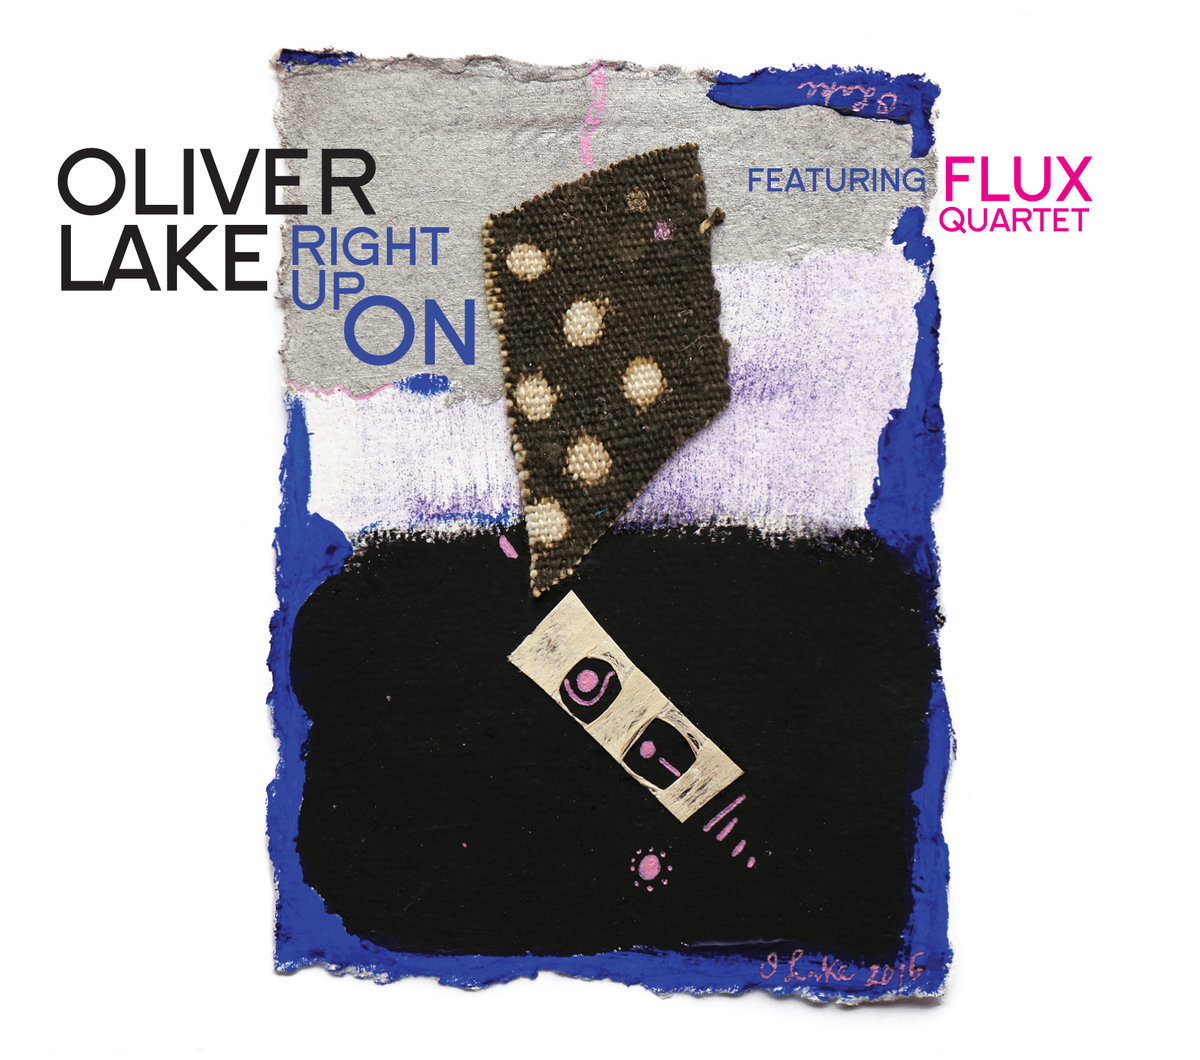 REVIEW: Oliver Lake, Featuring Flux Quartet - Right Up On